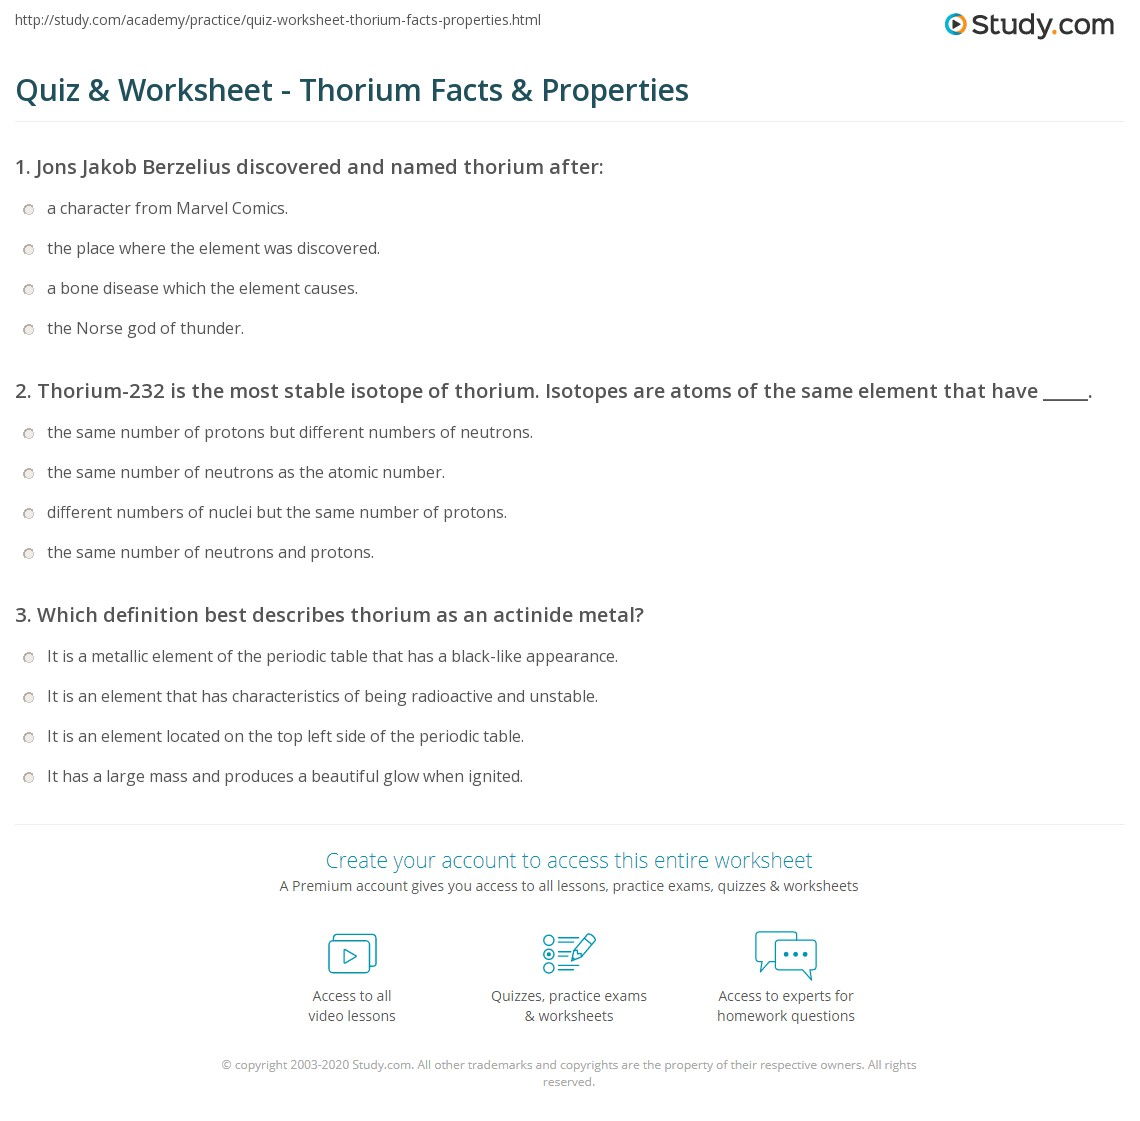 Quiz worksheet thorium facts properties study already registered login here for access gamestrikefo Image collections